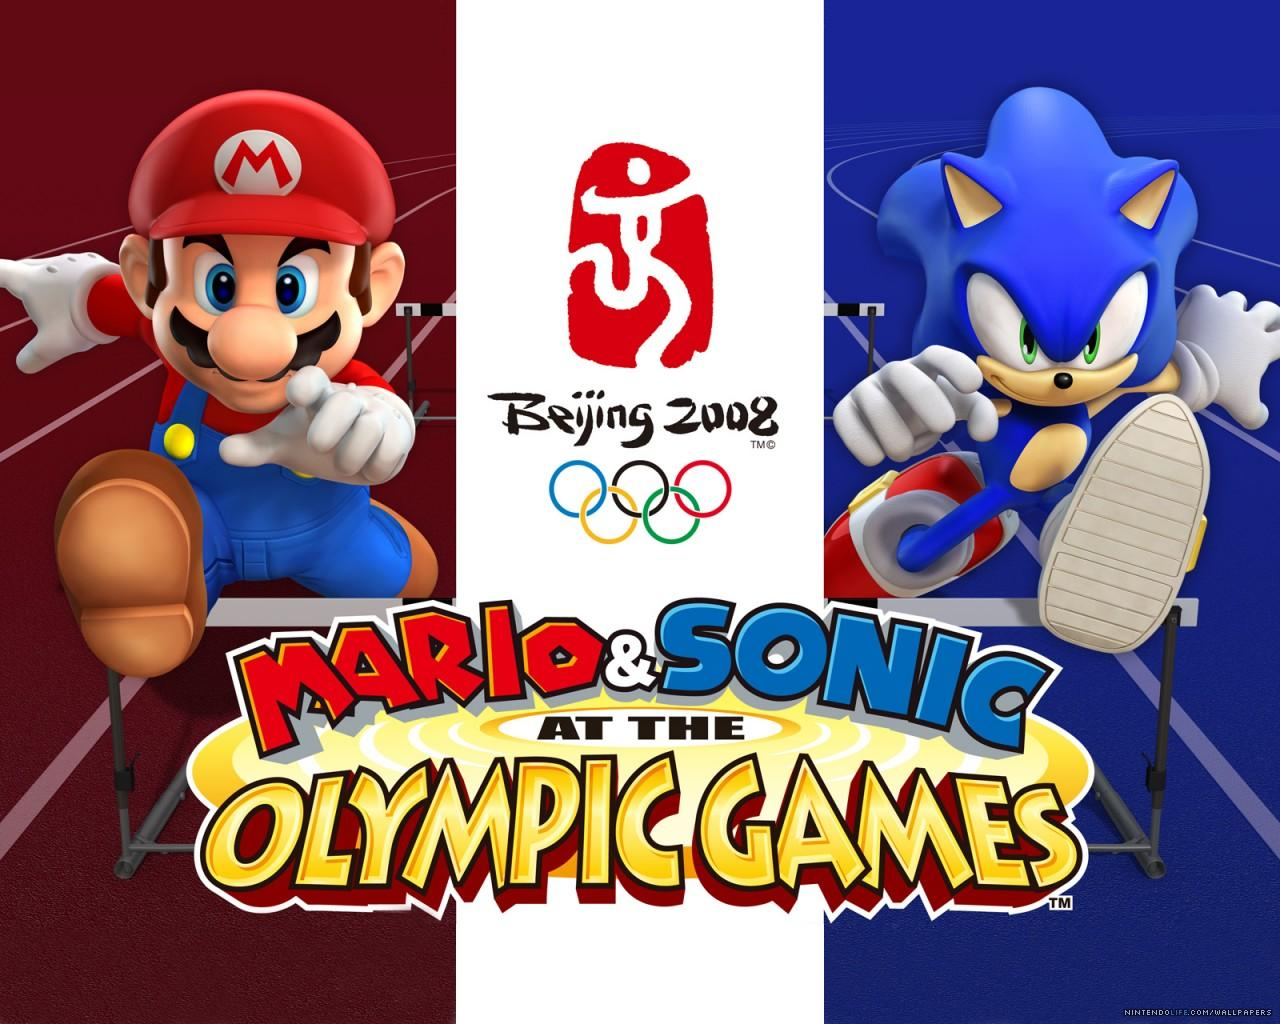 Обои Mario & Sonic at the Olympic Games 1280x1024